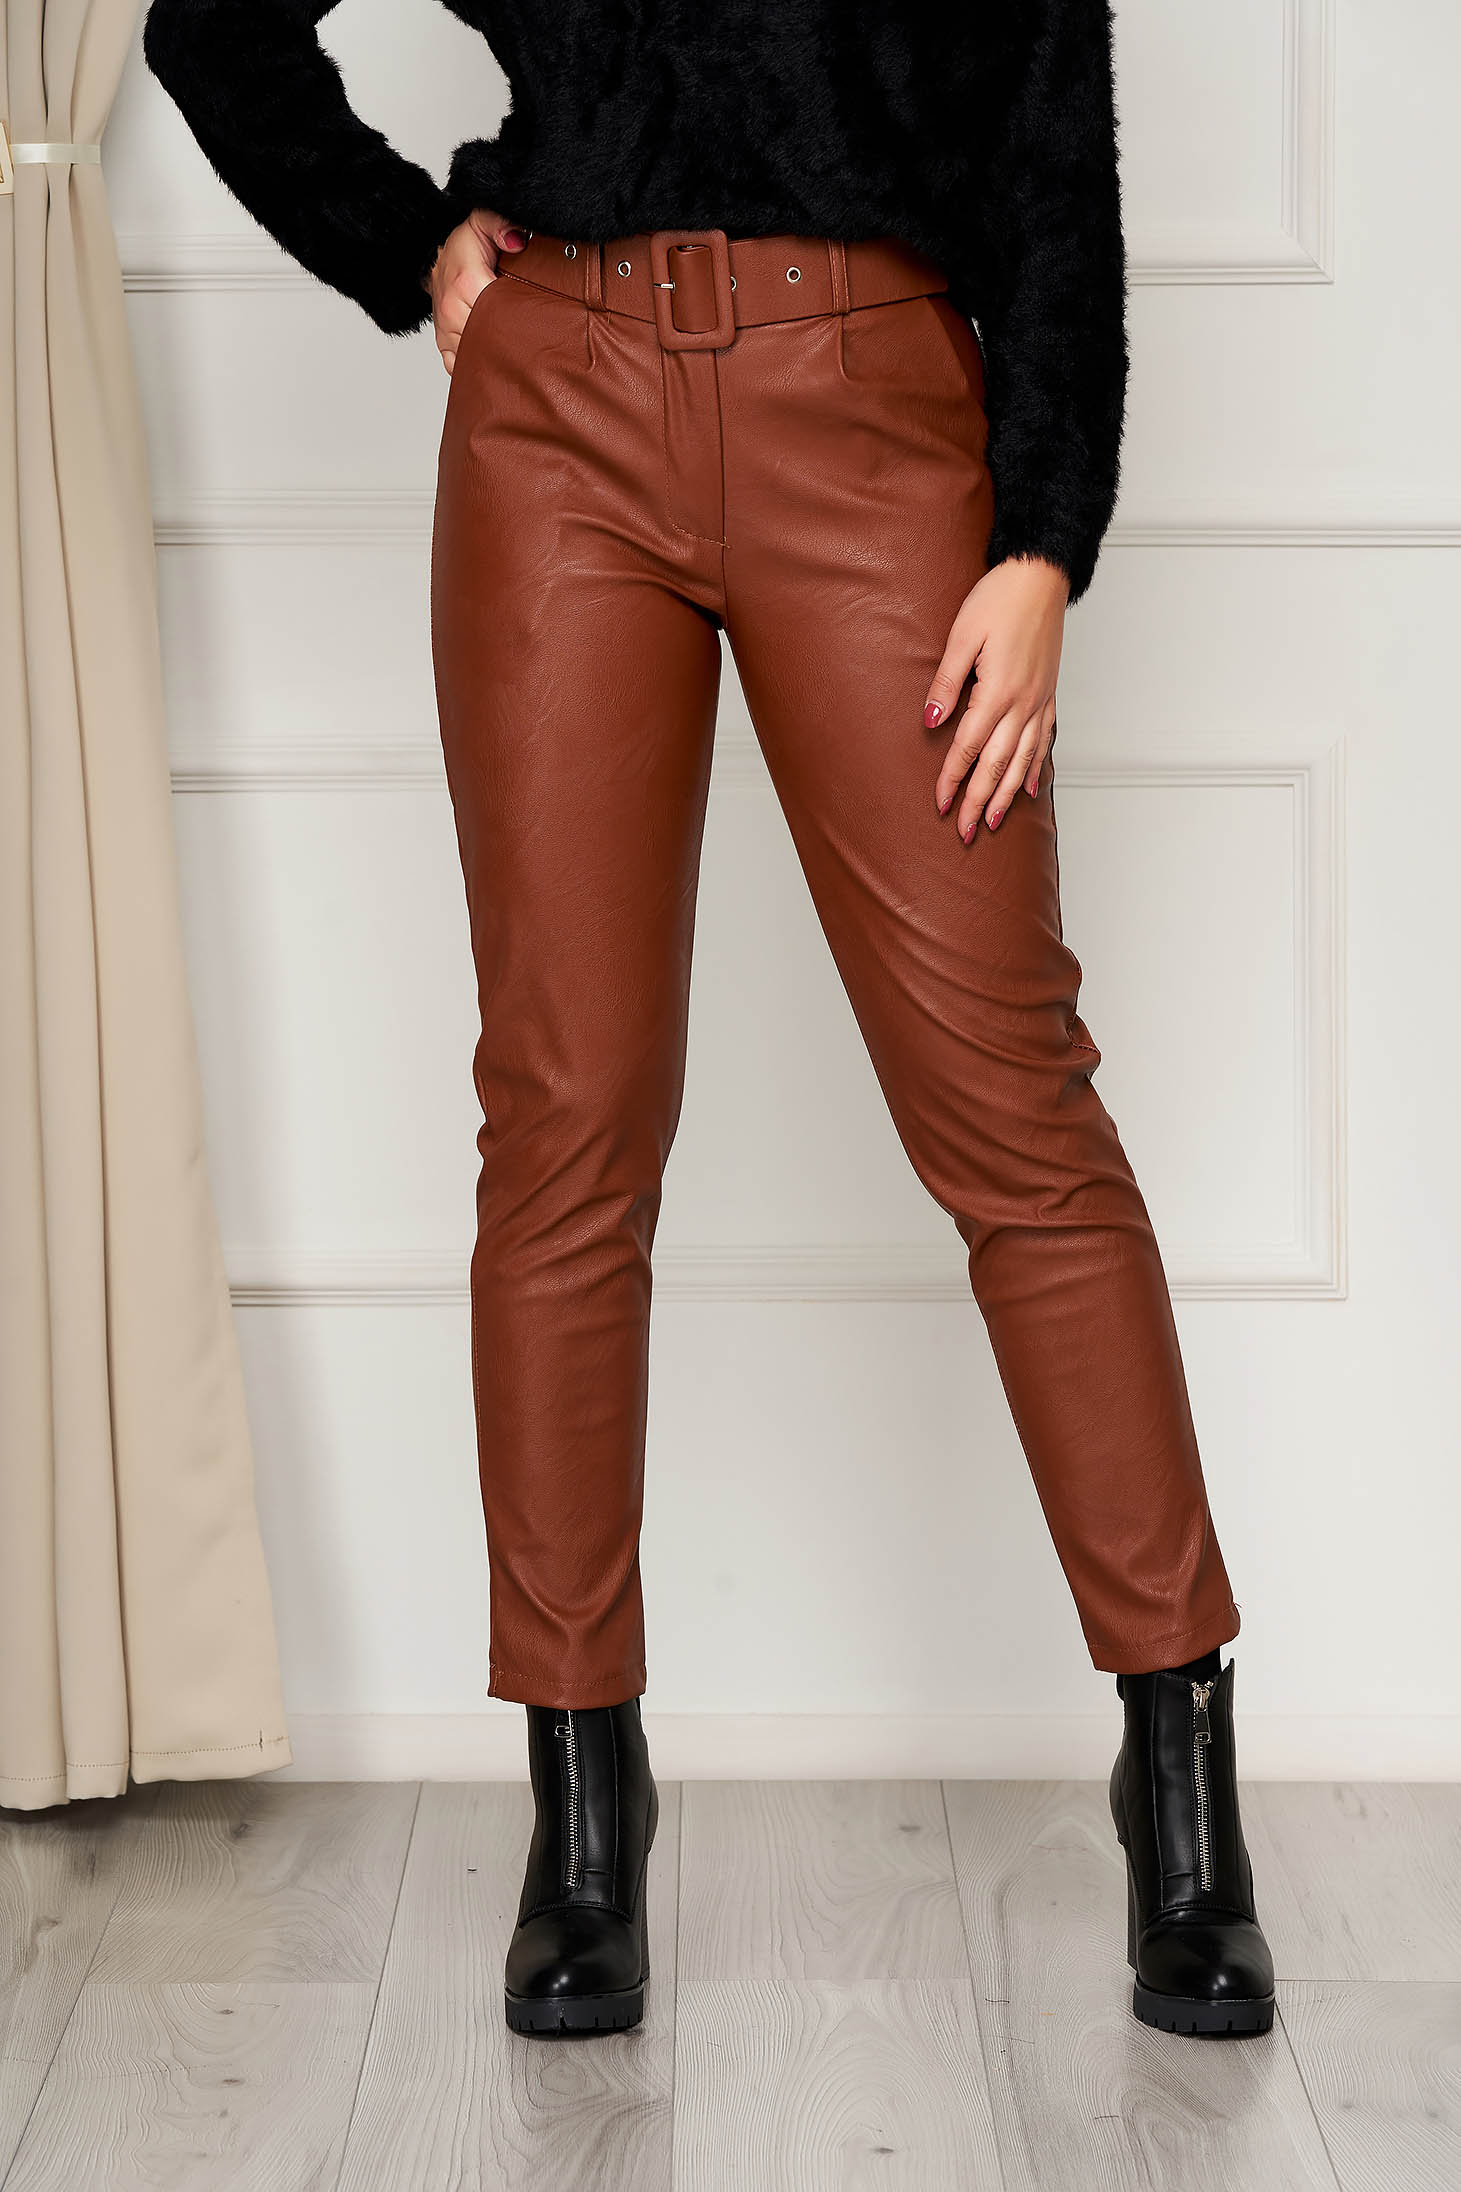 Brown trousers casual conical from ecological leather with pockets high waisted